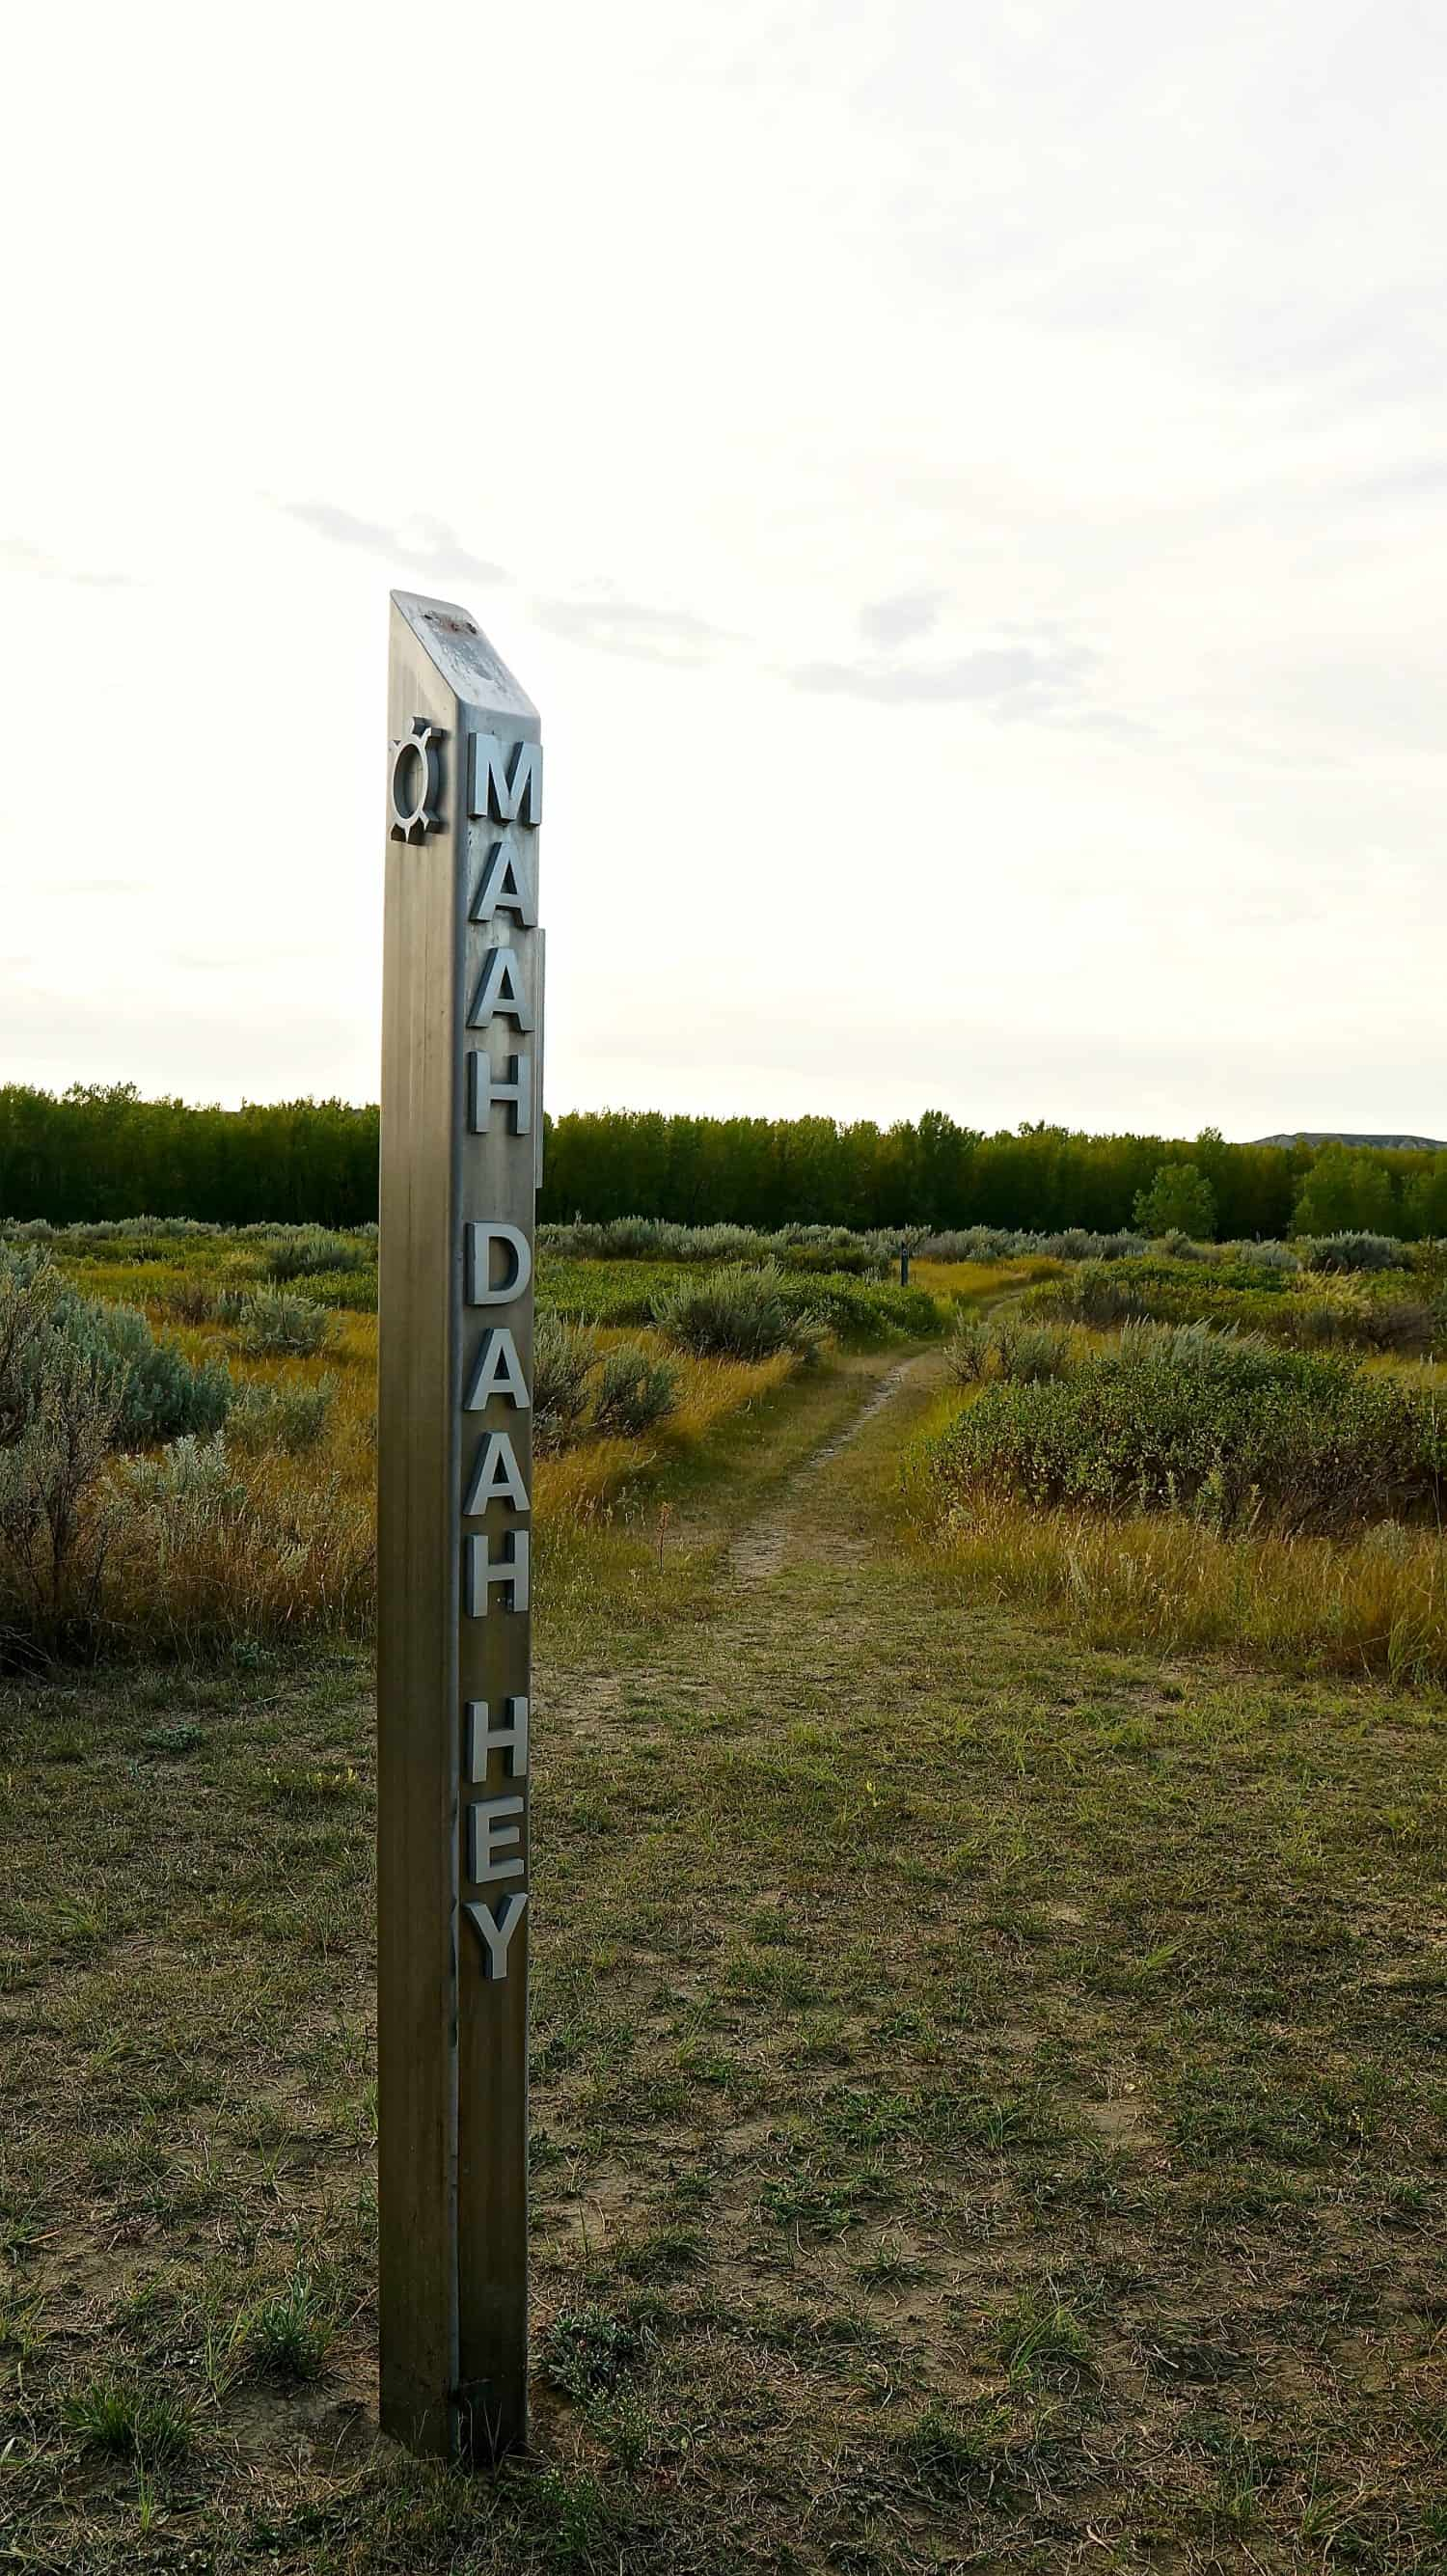 Maah Daah Hey Trail - Sully Creek State Park - Medora, ND